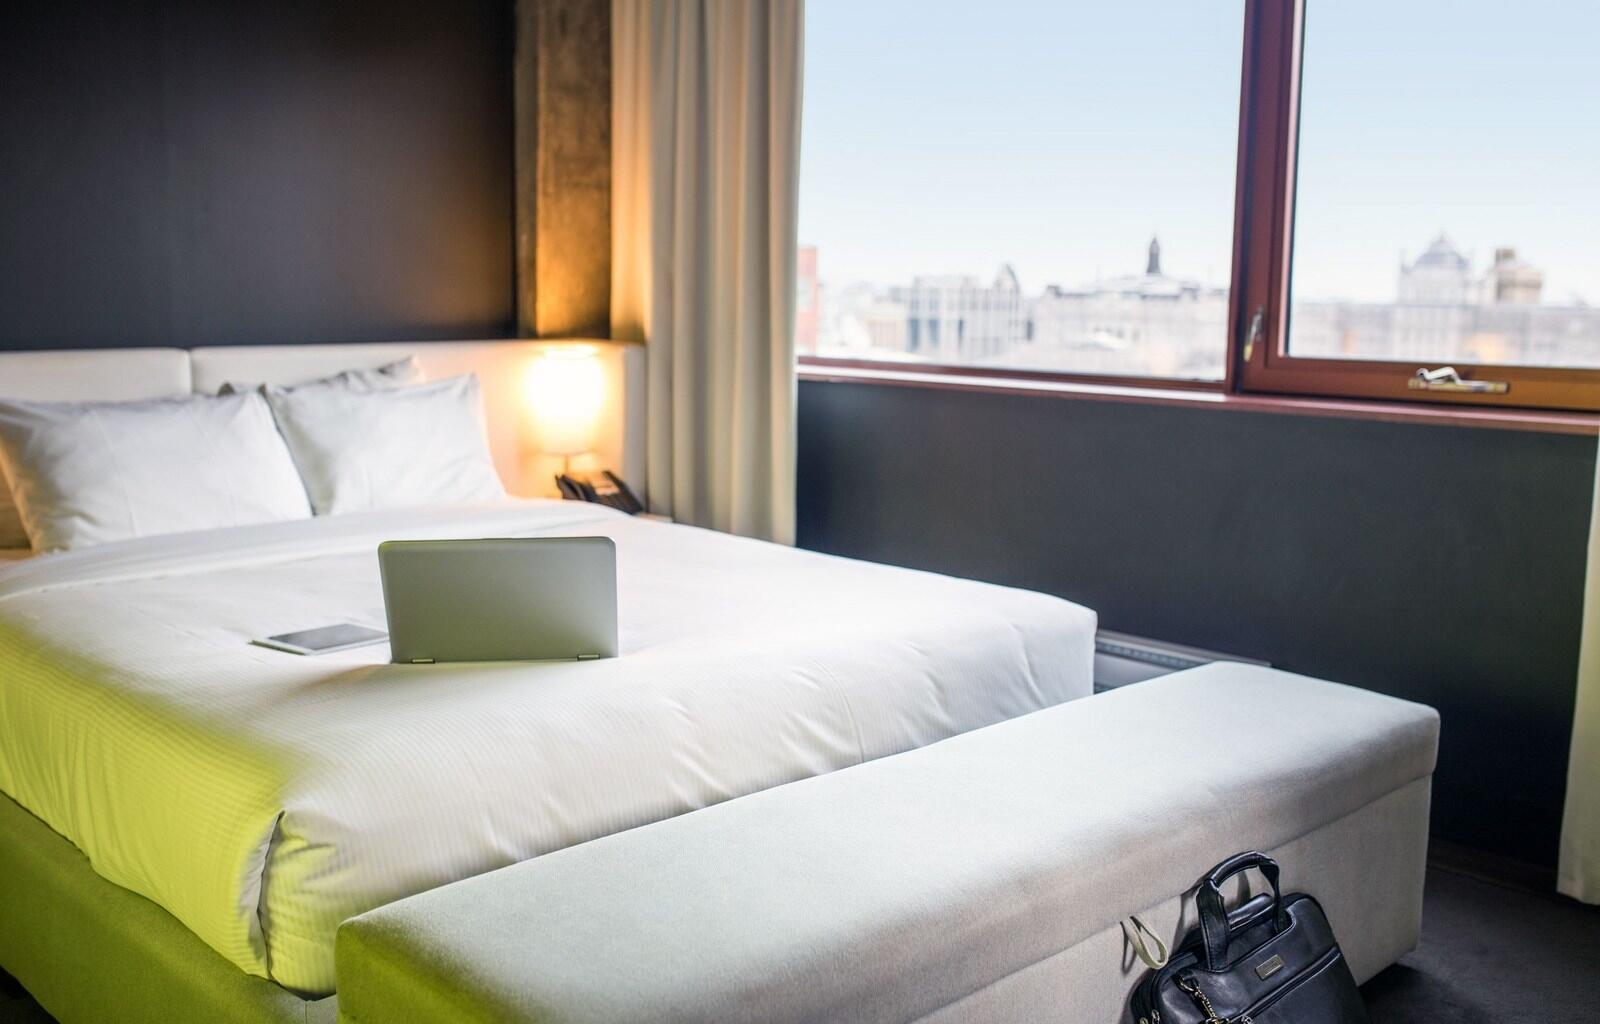 Queen Bed in Room with City Views